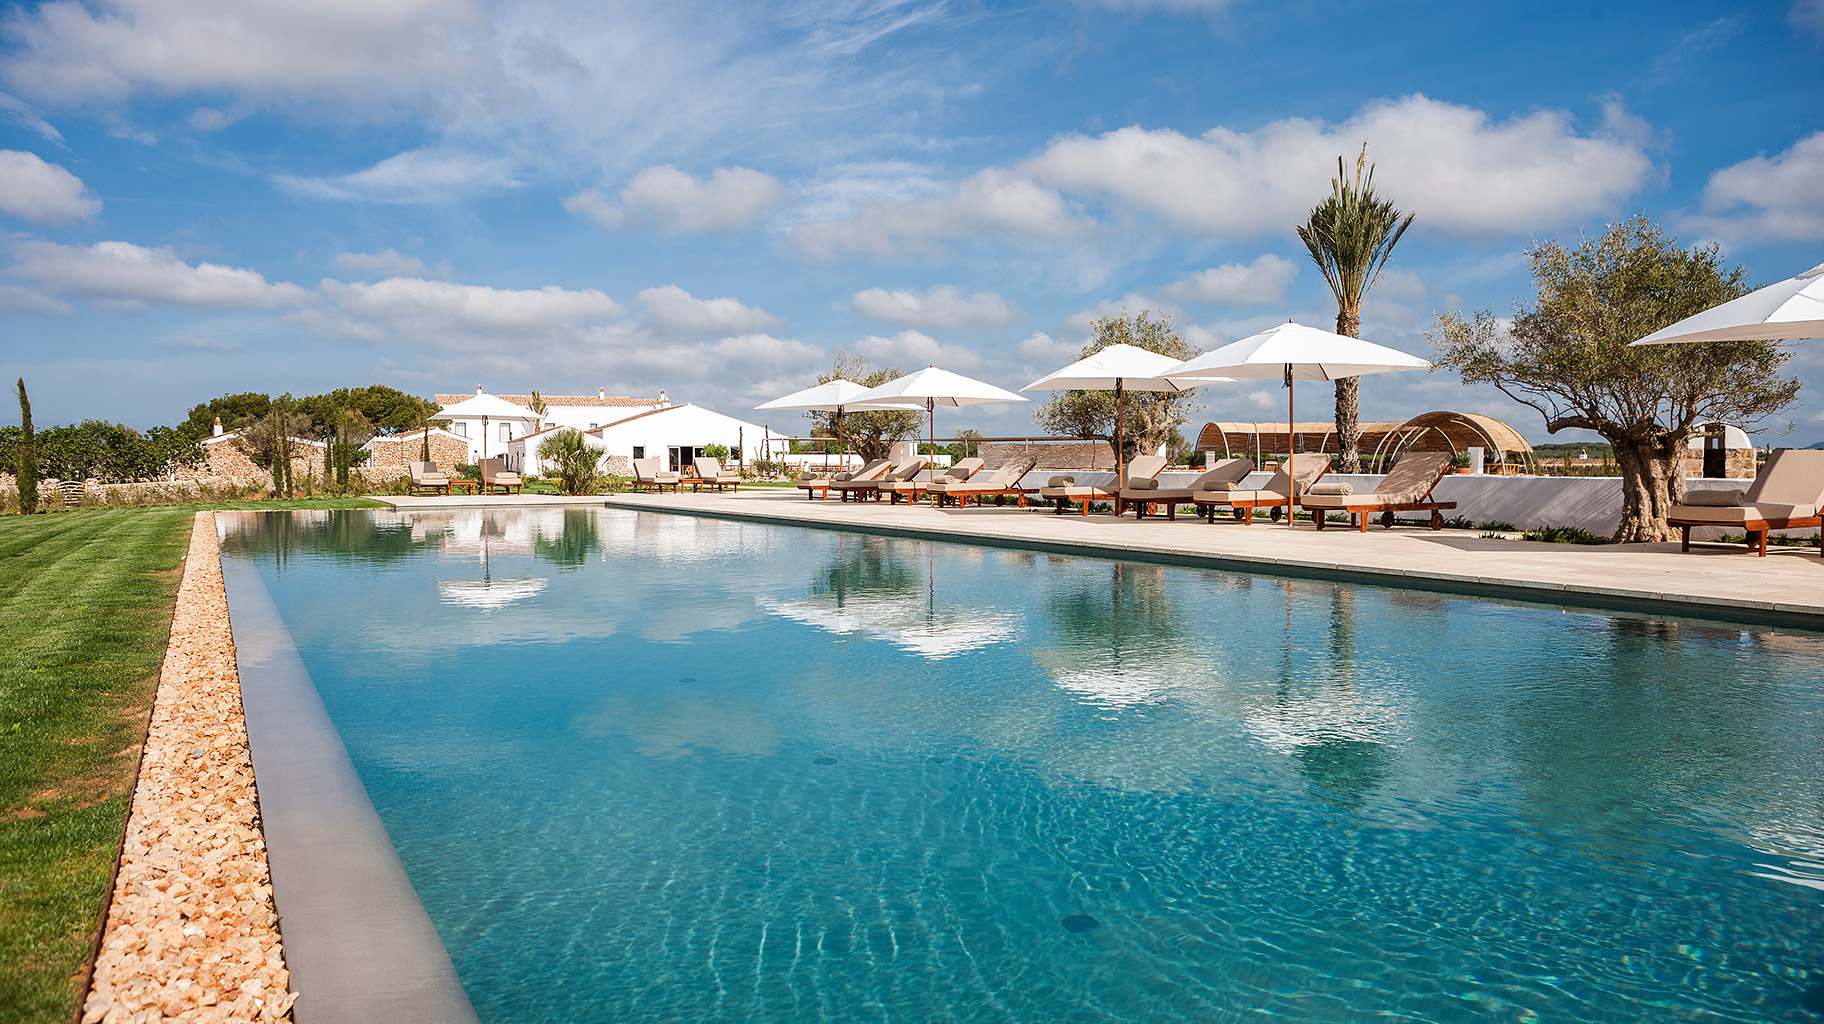 torralbenc-menorca-luxury-hotel-pool